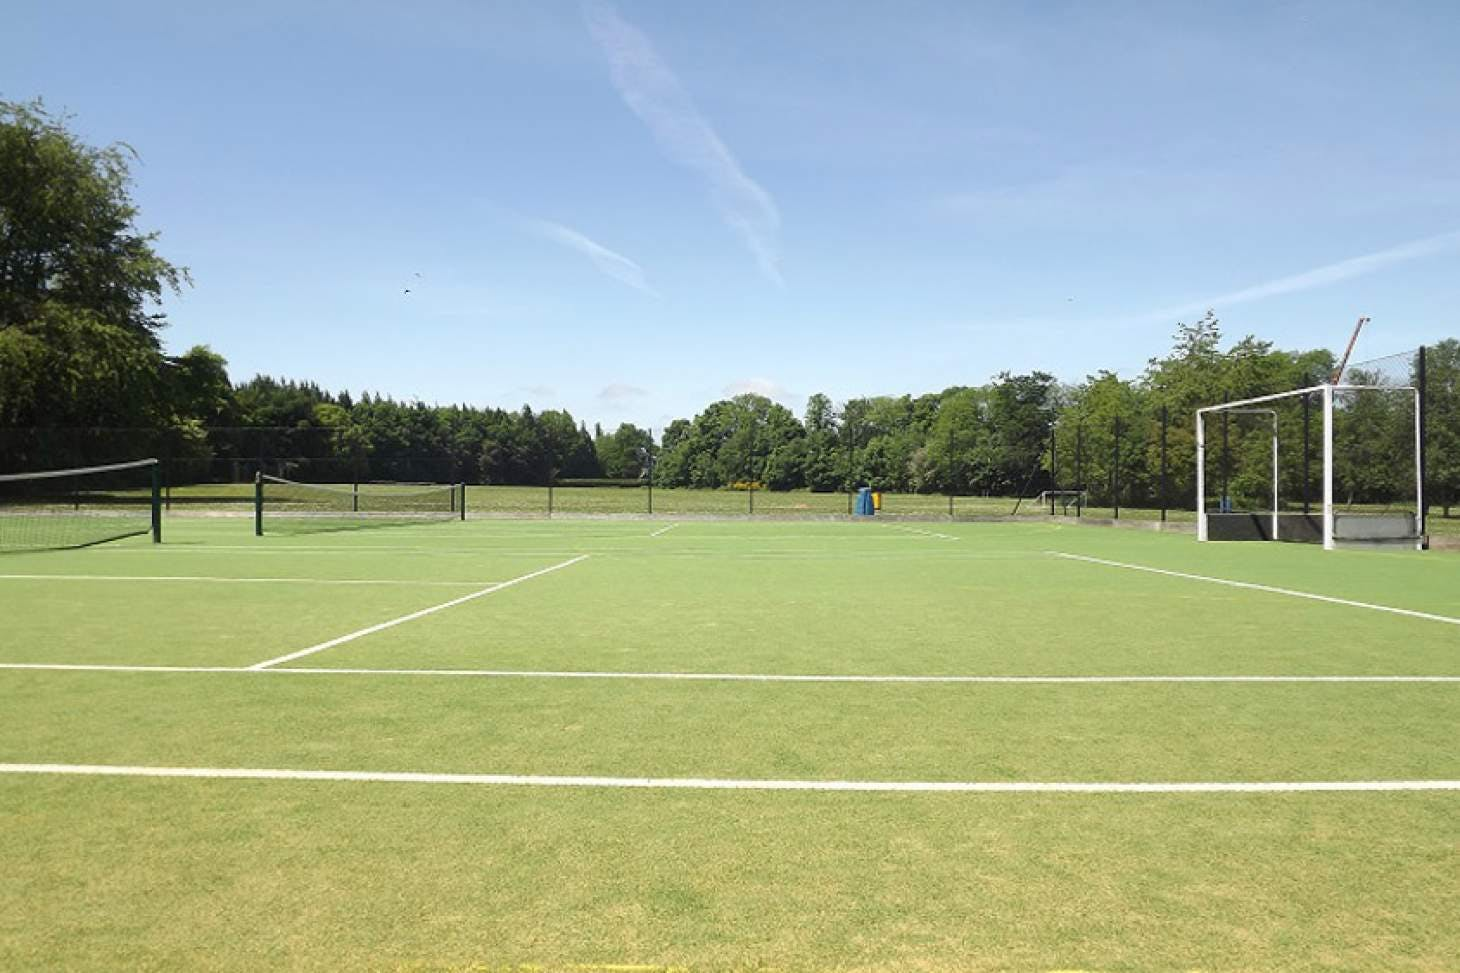 Dr Challoner's High School Outdoor | Astroturf tennis court